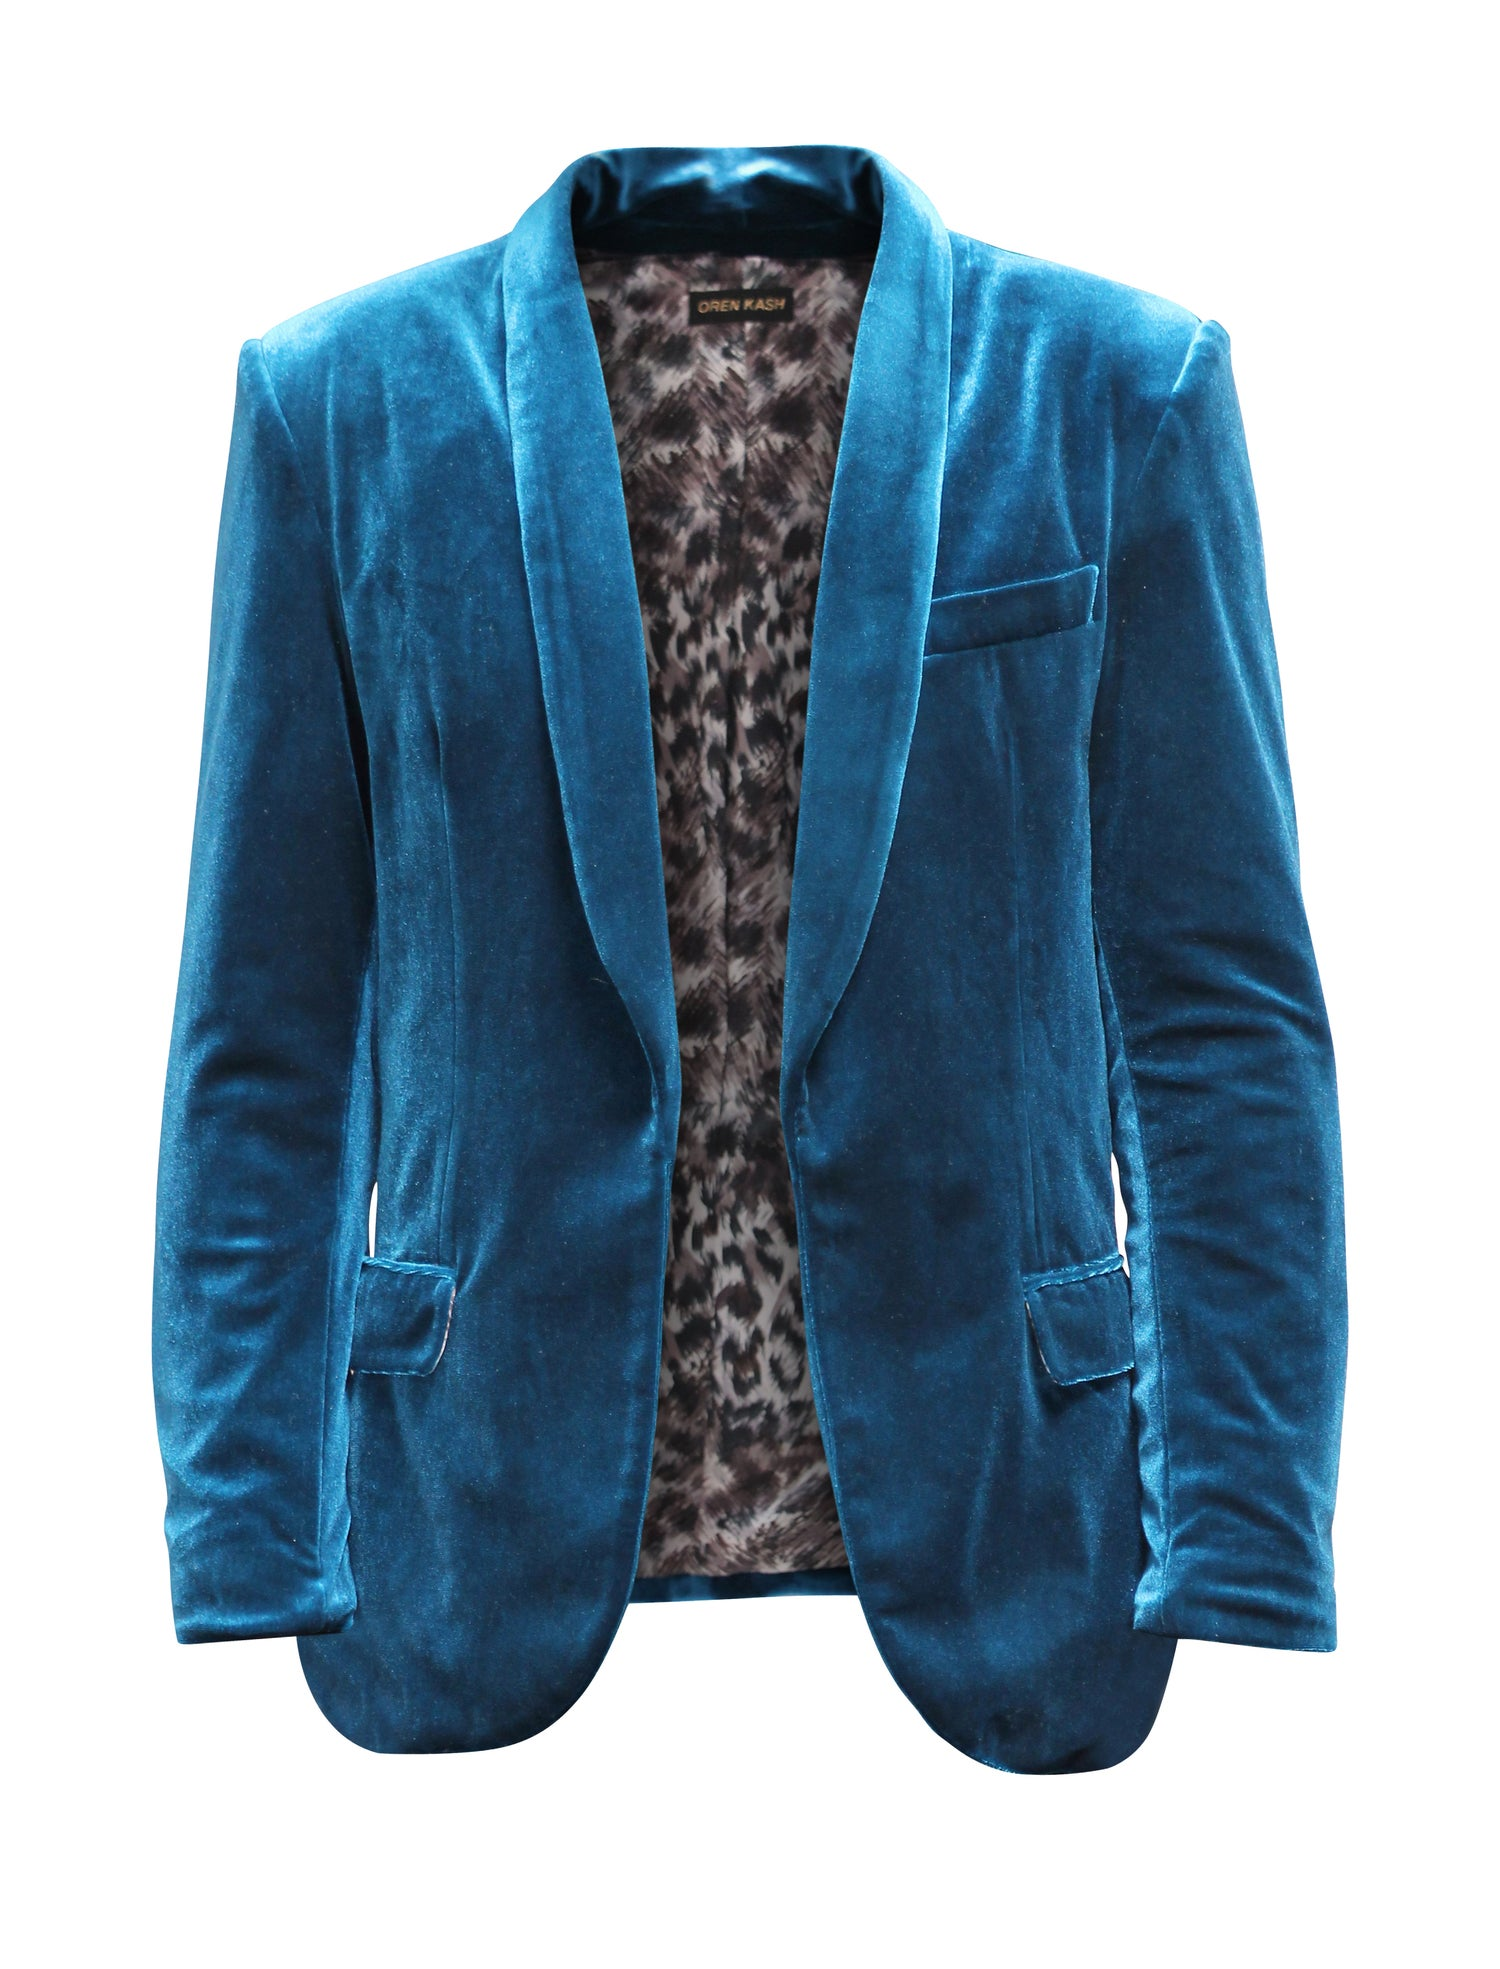 Image of Solid Velvet Smocking Jacket